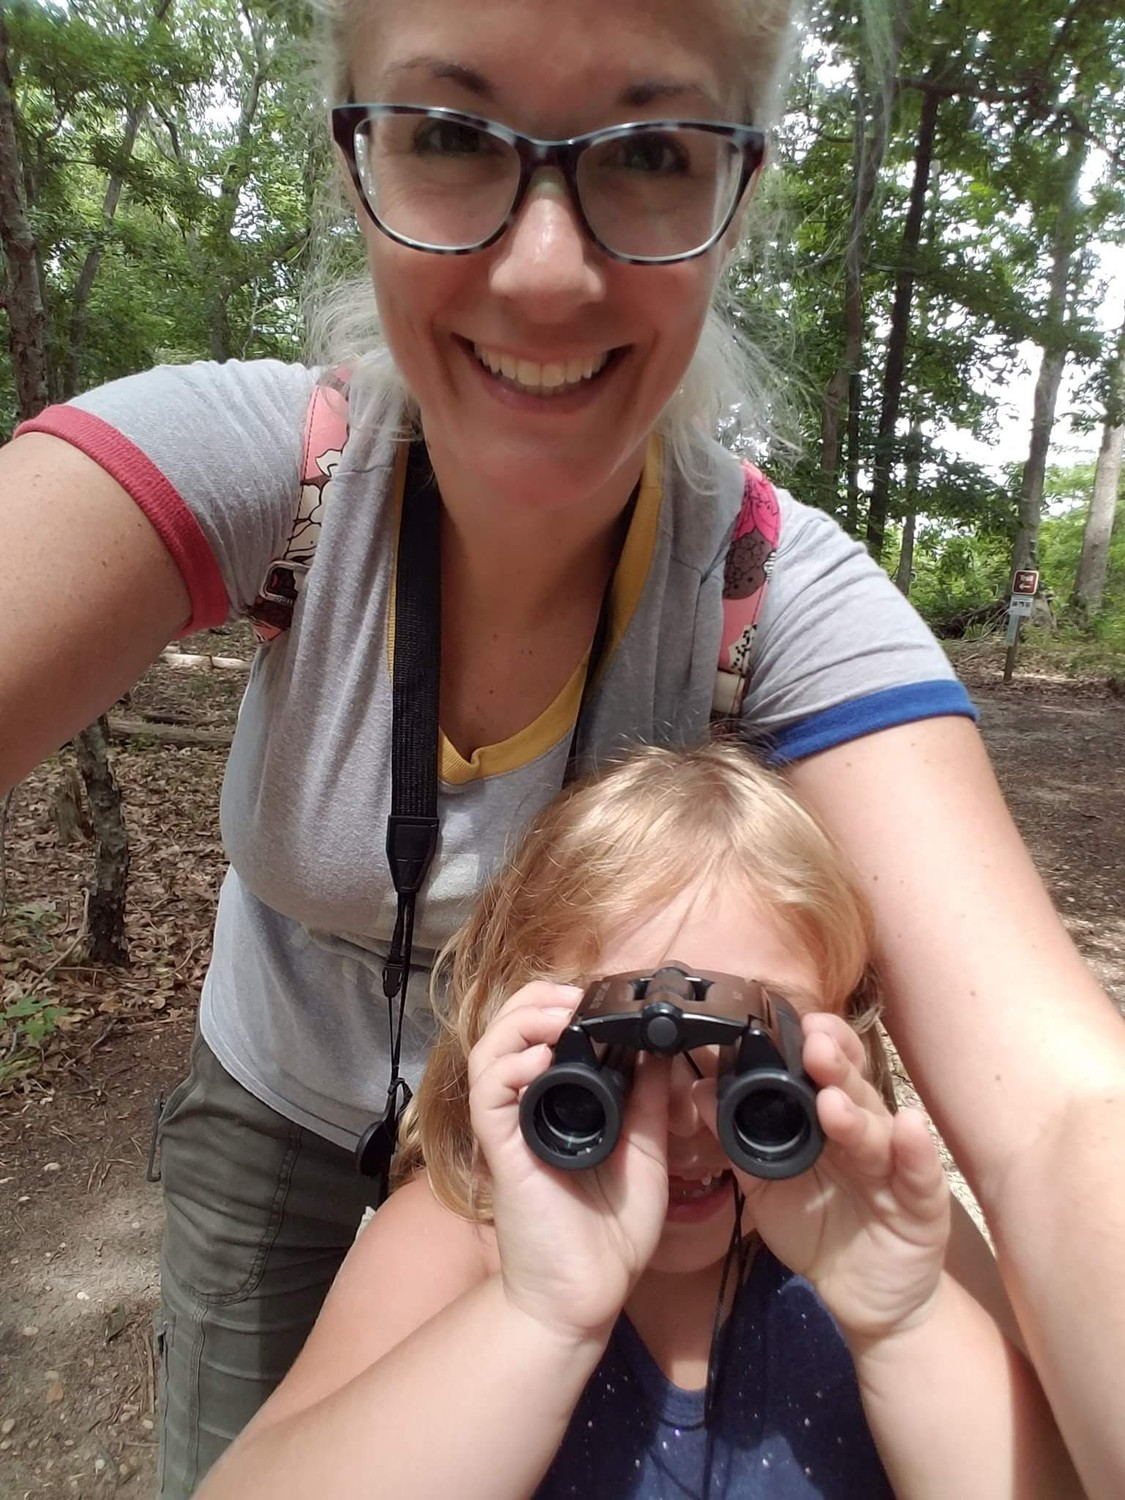 Chrissy Hirsch, of East Meadow, has grown accustomed to finding at least one tick on her clothing during or after a hike, she said, adding that she wasn't surprised when she and her daughter, Zoe, 7, found one during a recent visit to the Elizabeth Morton Wildlife Refuge in Sag Harbor.